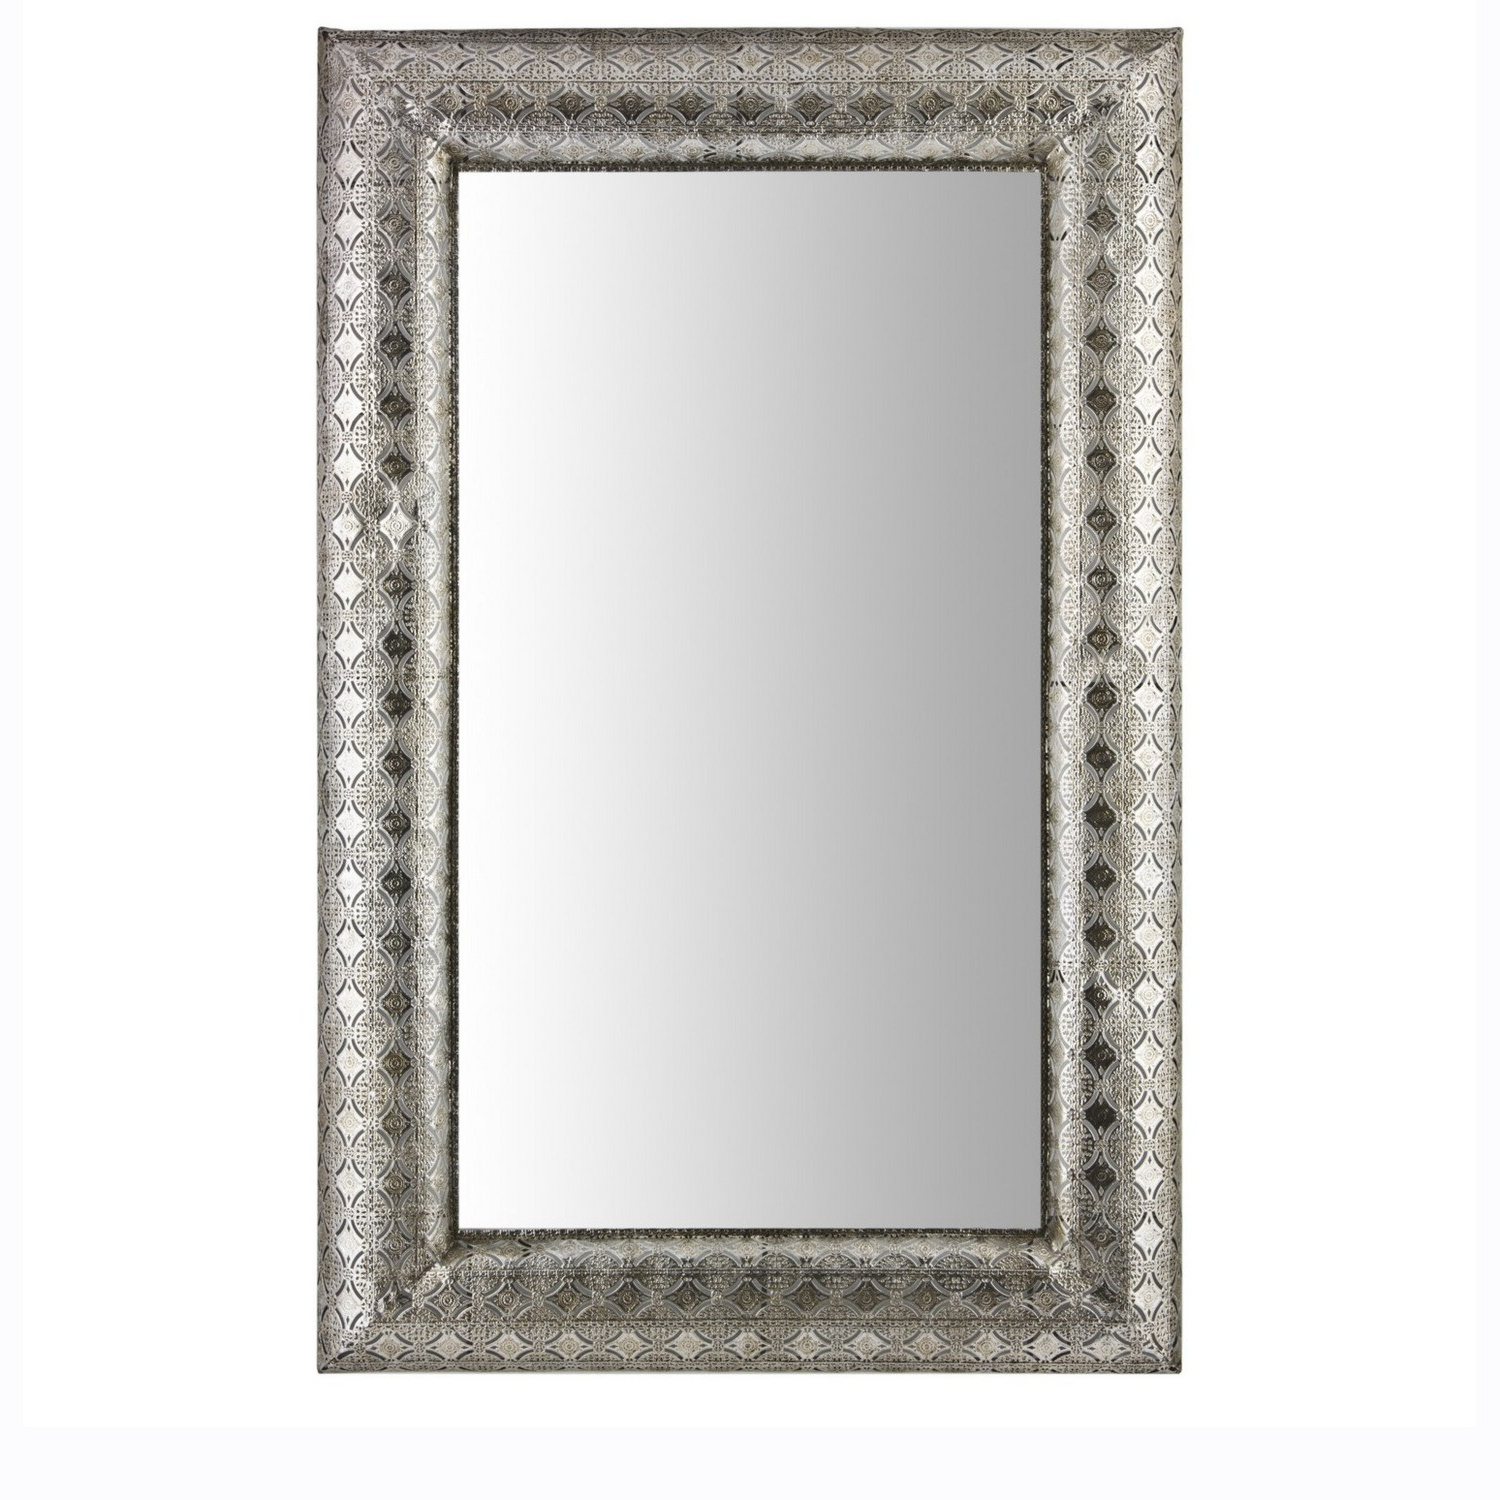 The Range Pertaining To Most Popular Ornate Full Length Wall Mirrors (View 19 of 20)